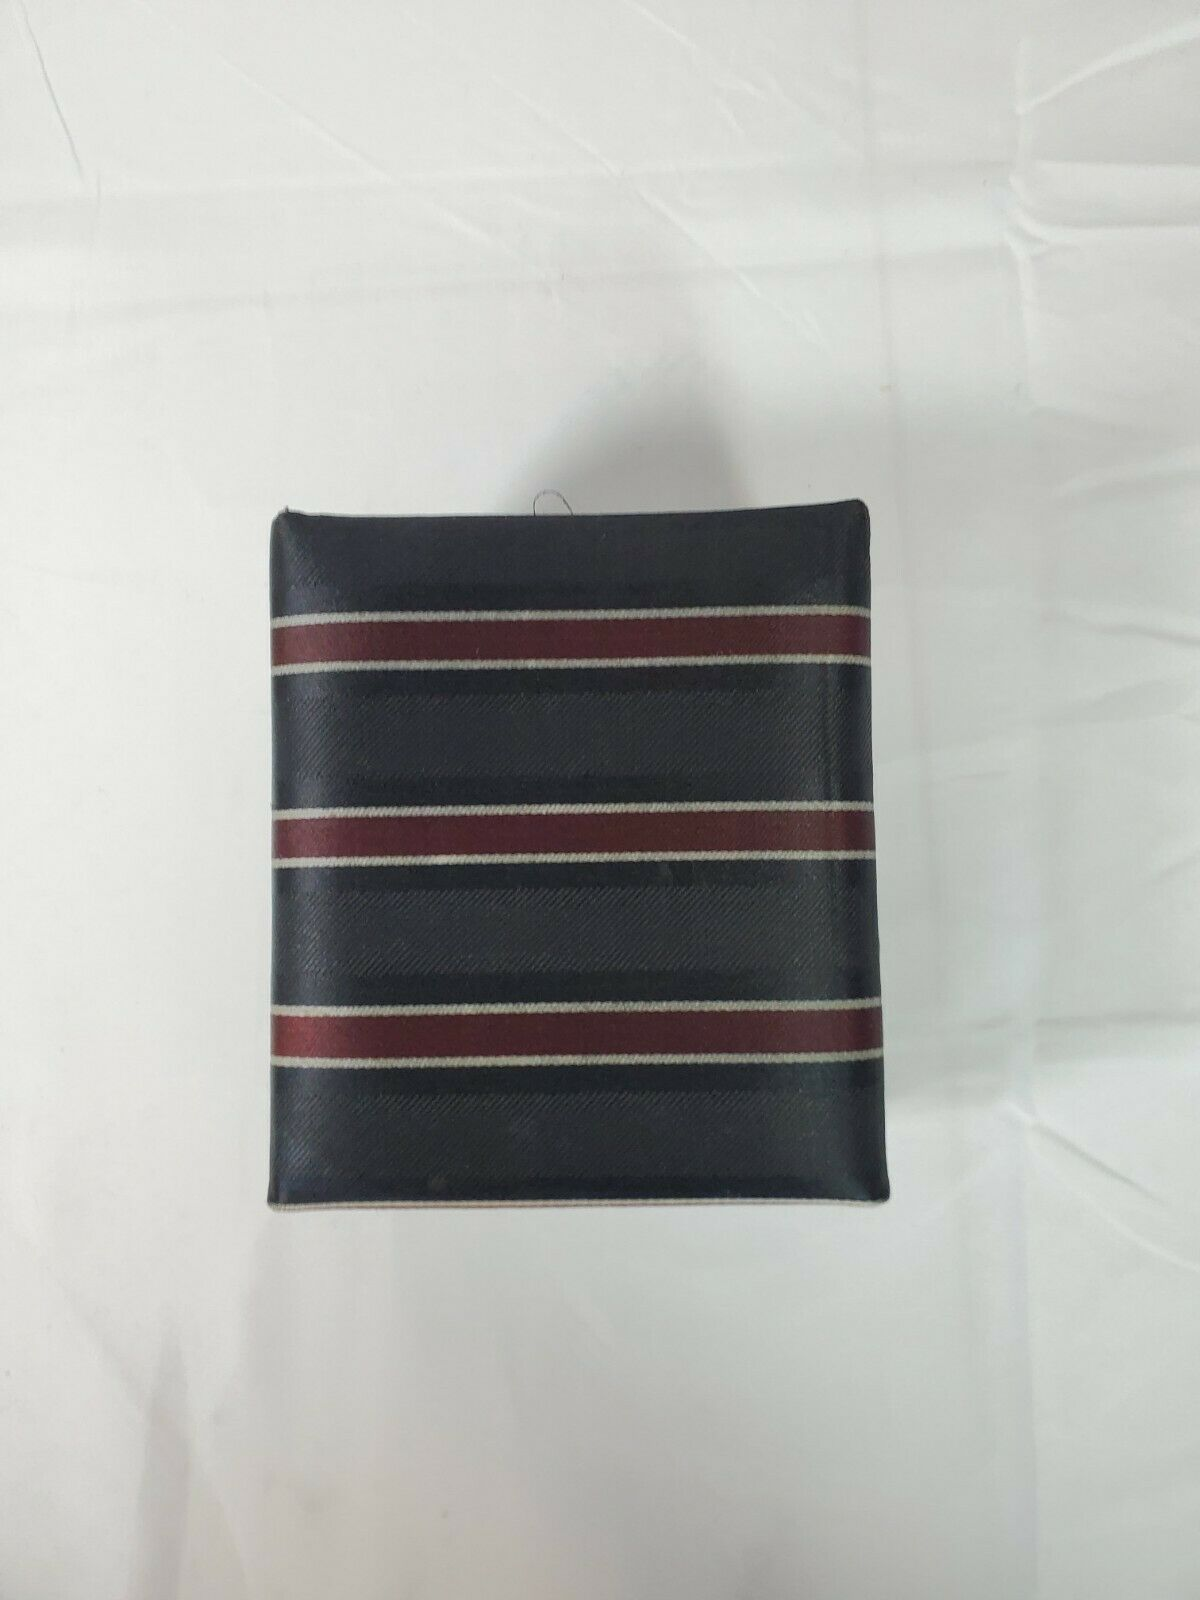 A. Santoni Collection Tie with Pocket Hankie, Cuff Links In Box